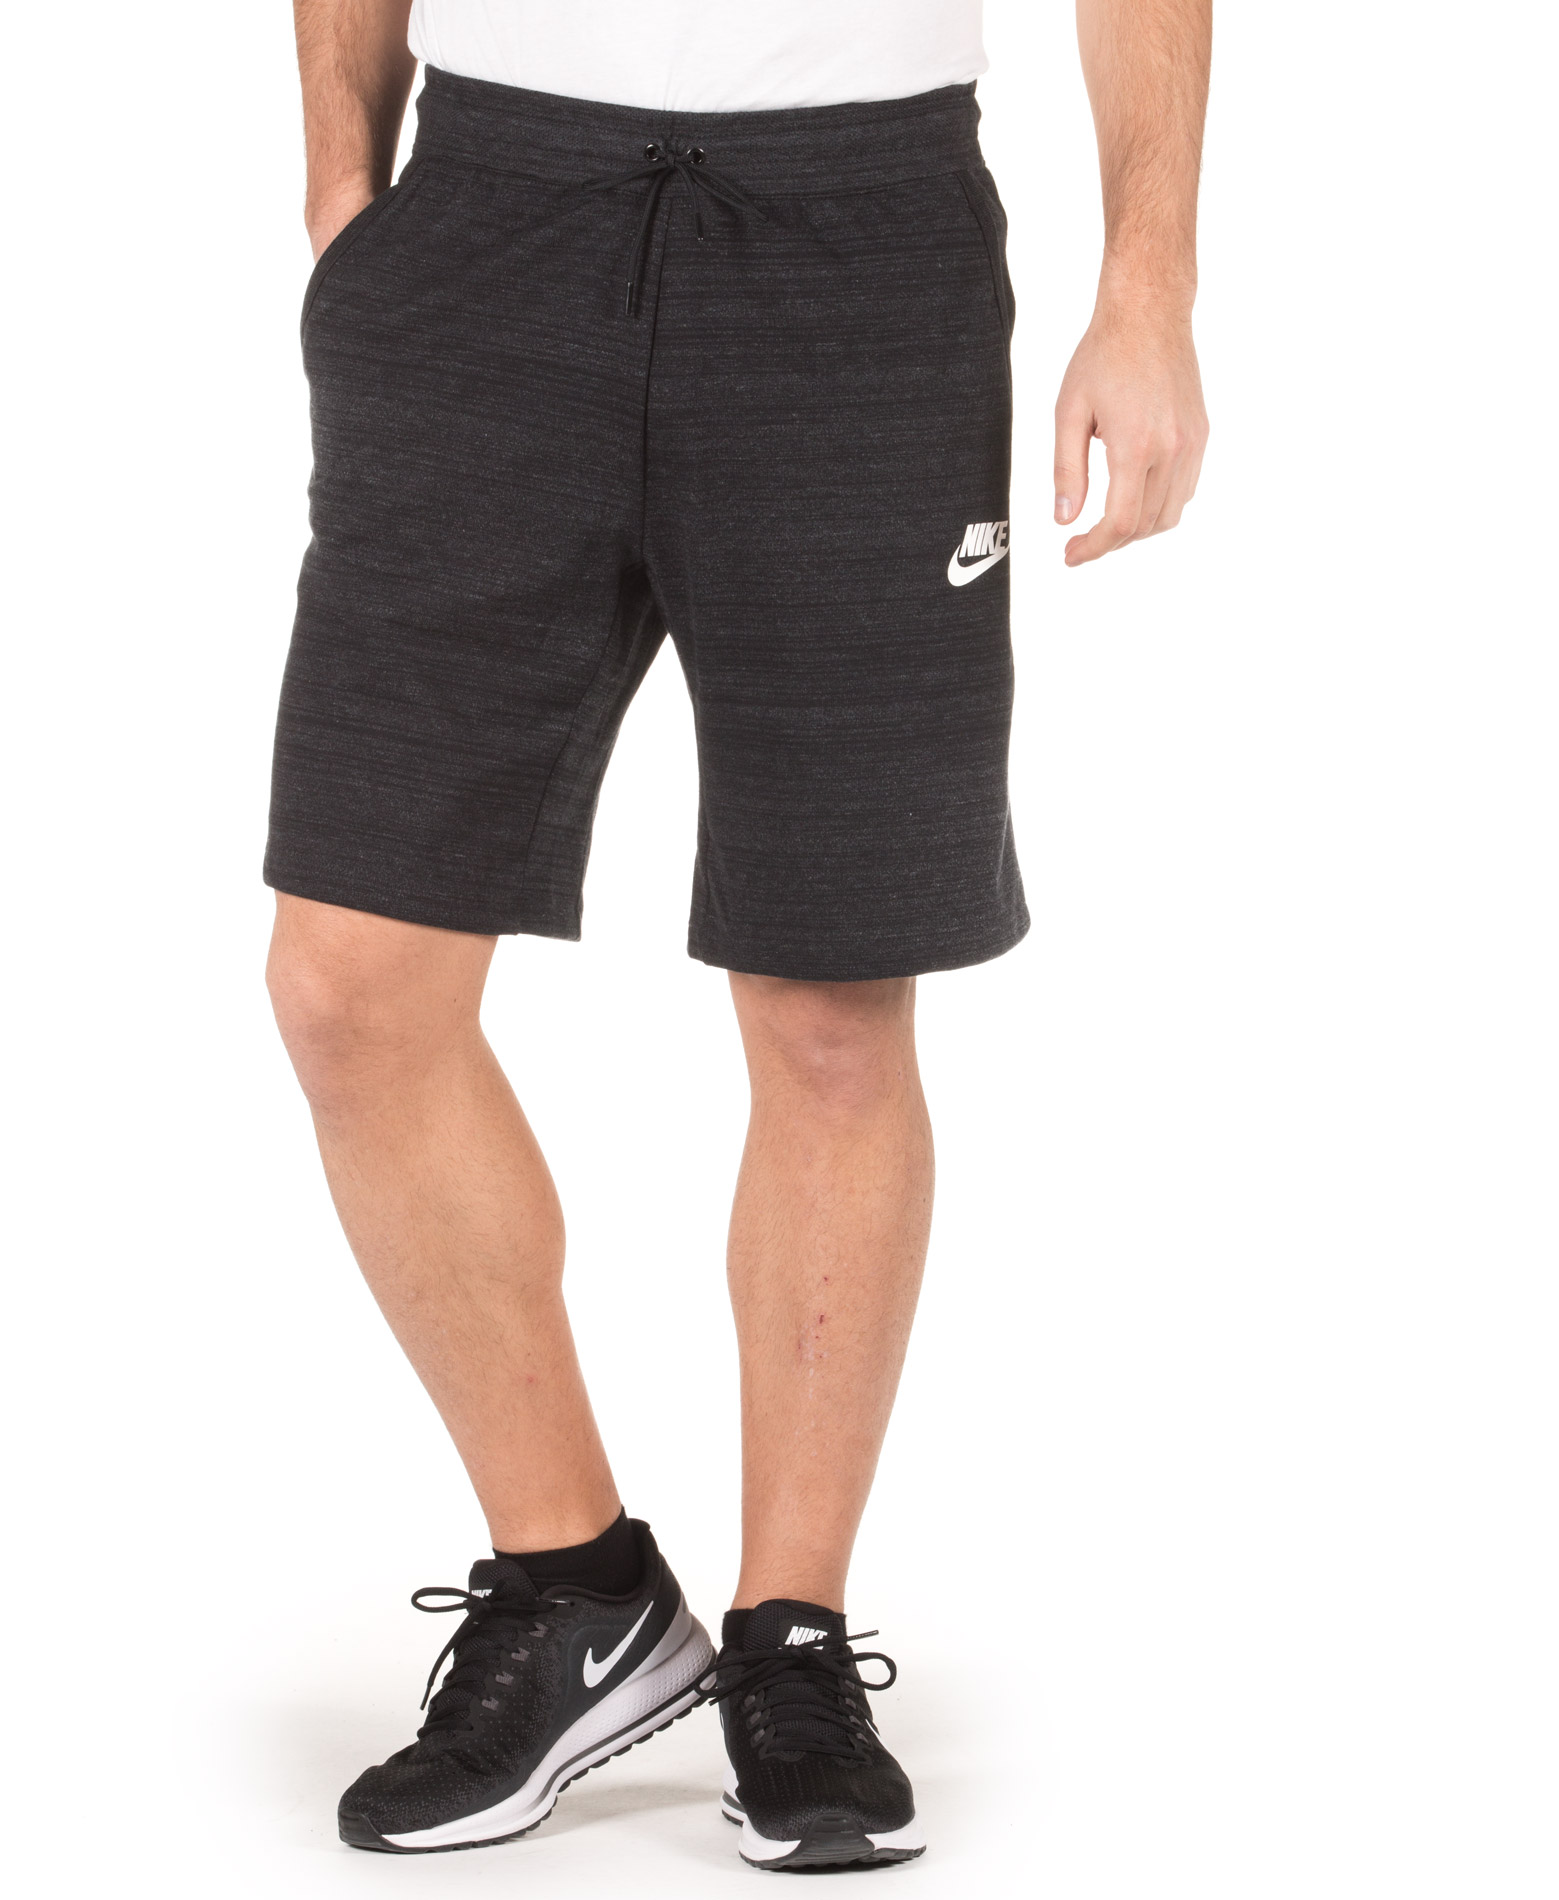 NIKE M NSW AV15 SHORT KNIT 885925-010 Μαύρο